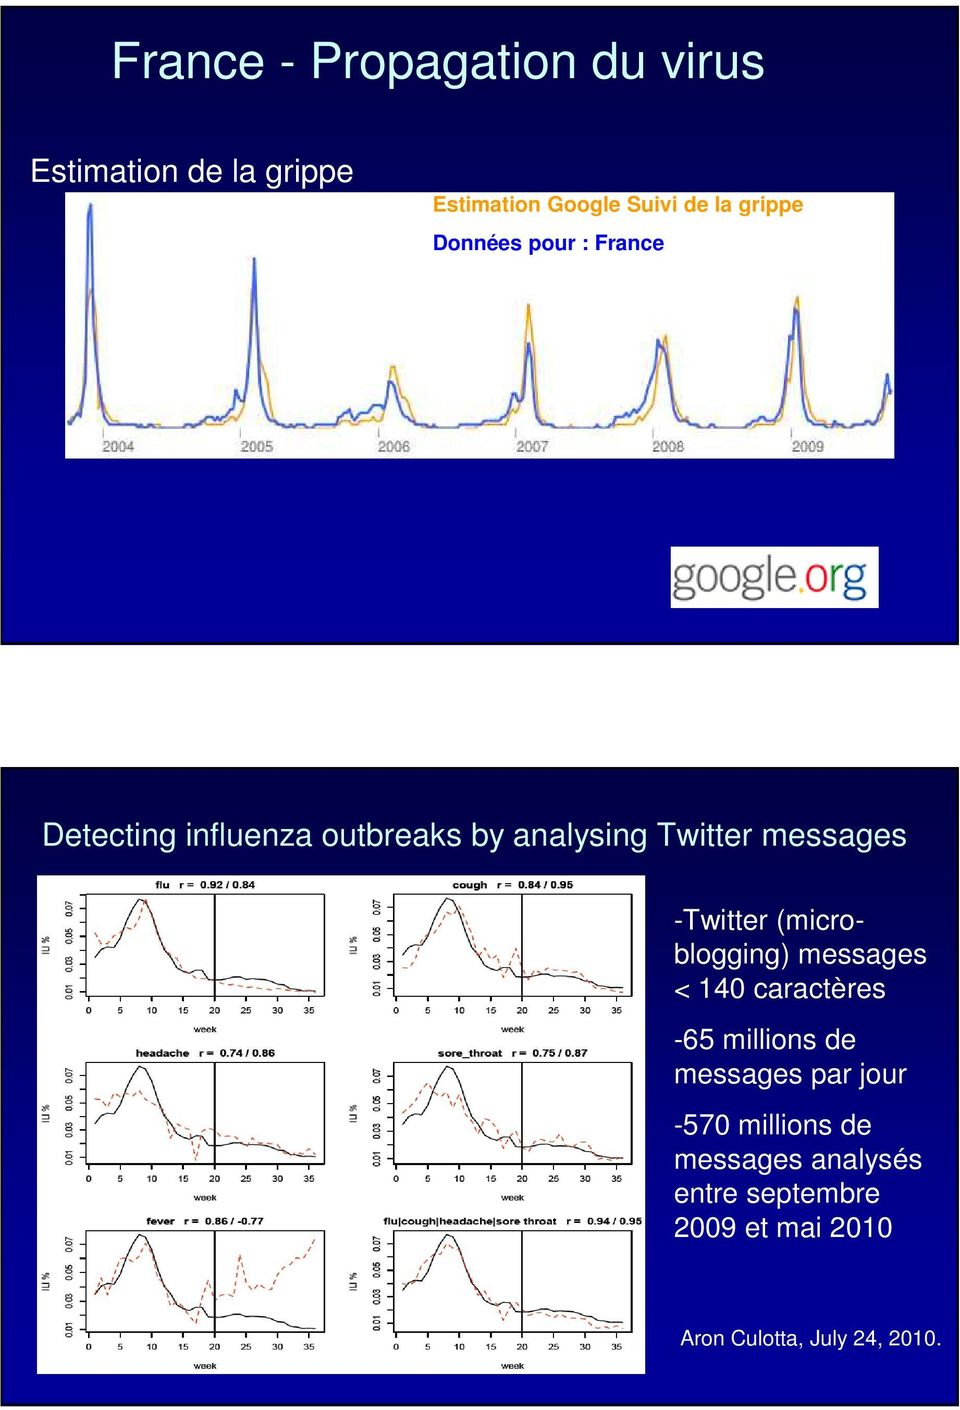 -Twitter (microblogging) messages < 140 caractères -65 millions de messages par jour